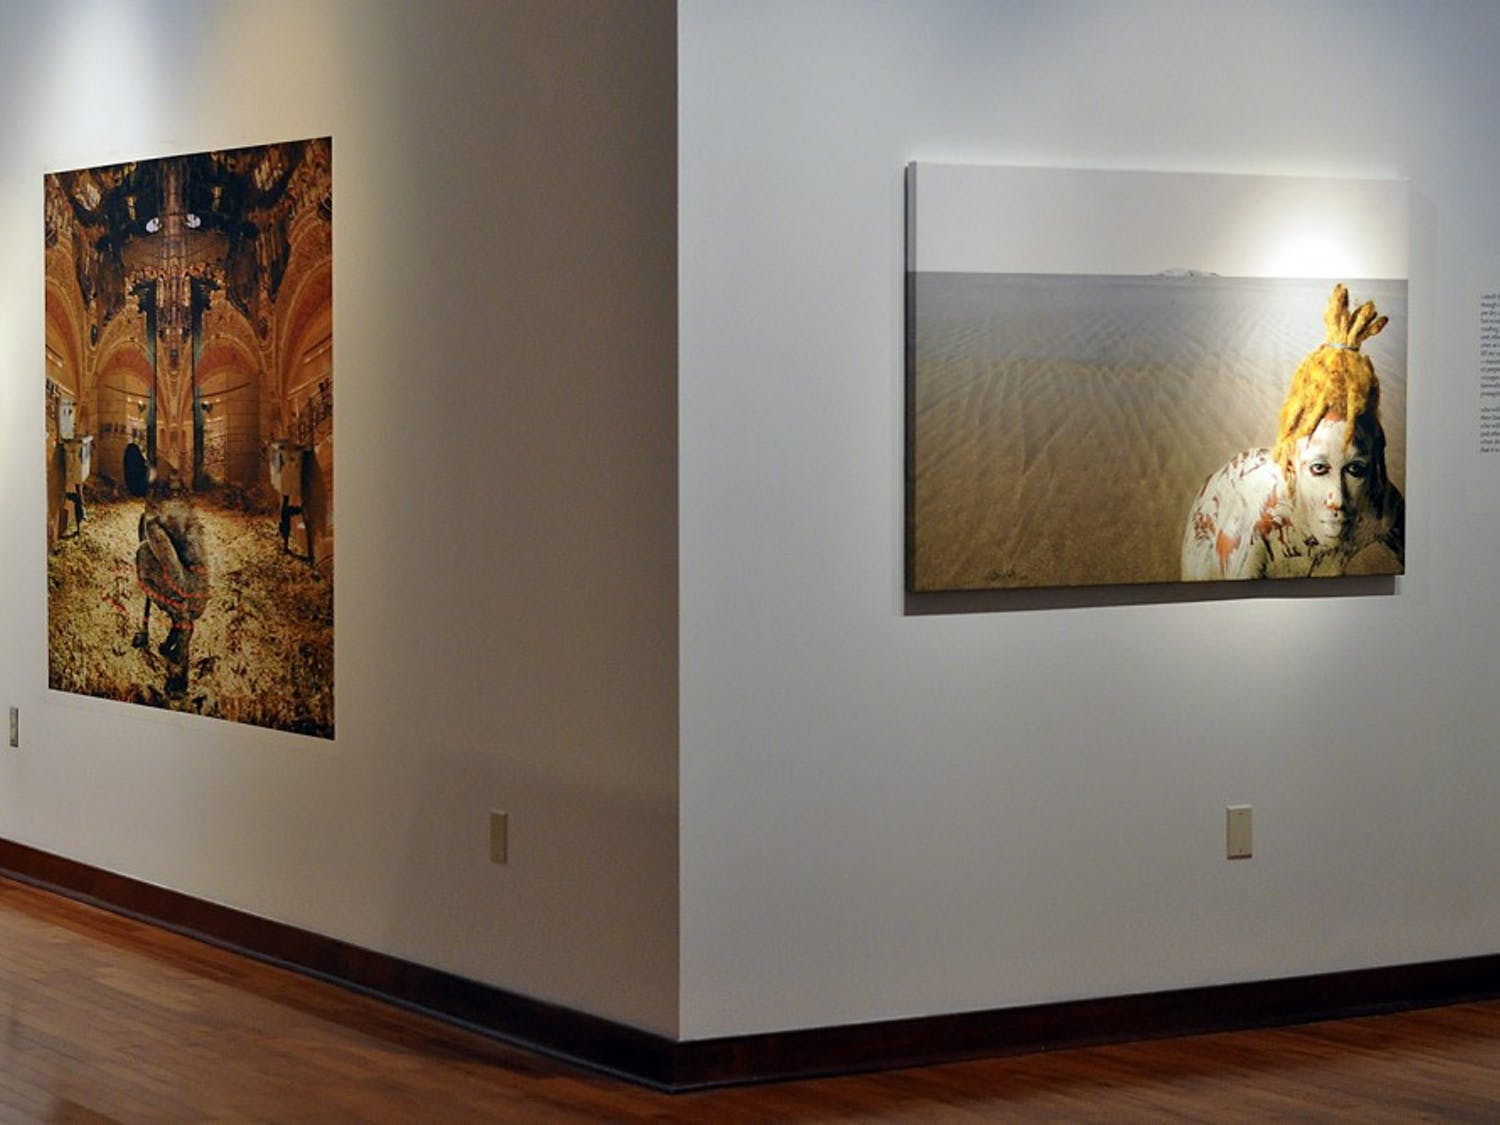 Ritual + Time Travel = Rebirth: Images and Words by Michael Platt and Carol Beane will be shown at the Sonja Haynes Stone Center's Robert and Sallie Brown Gallery and Museum from January 29 through May 11.